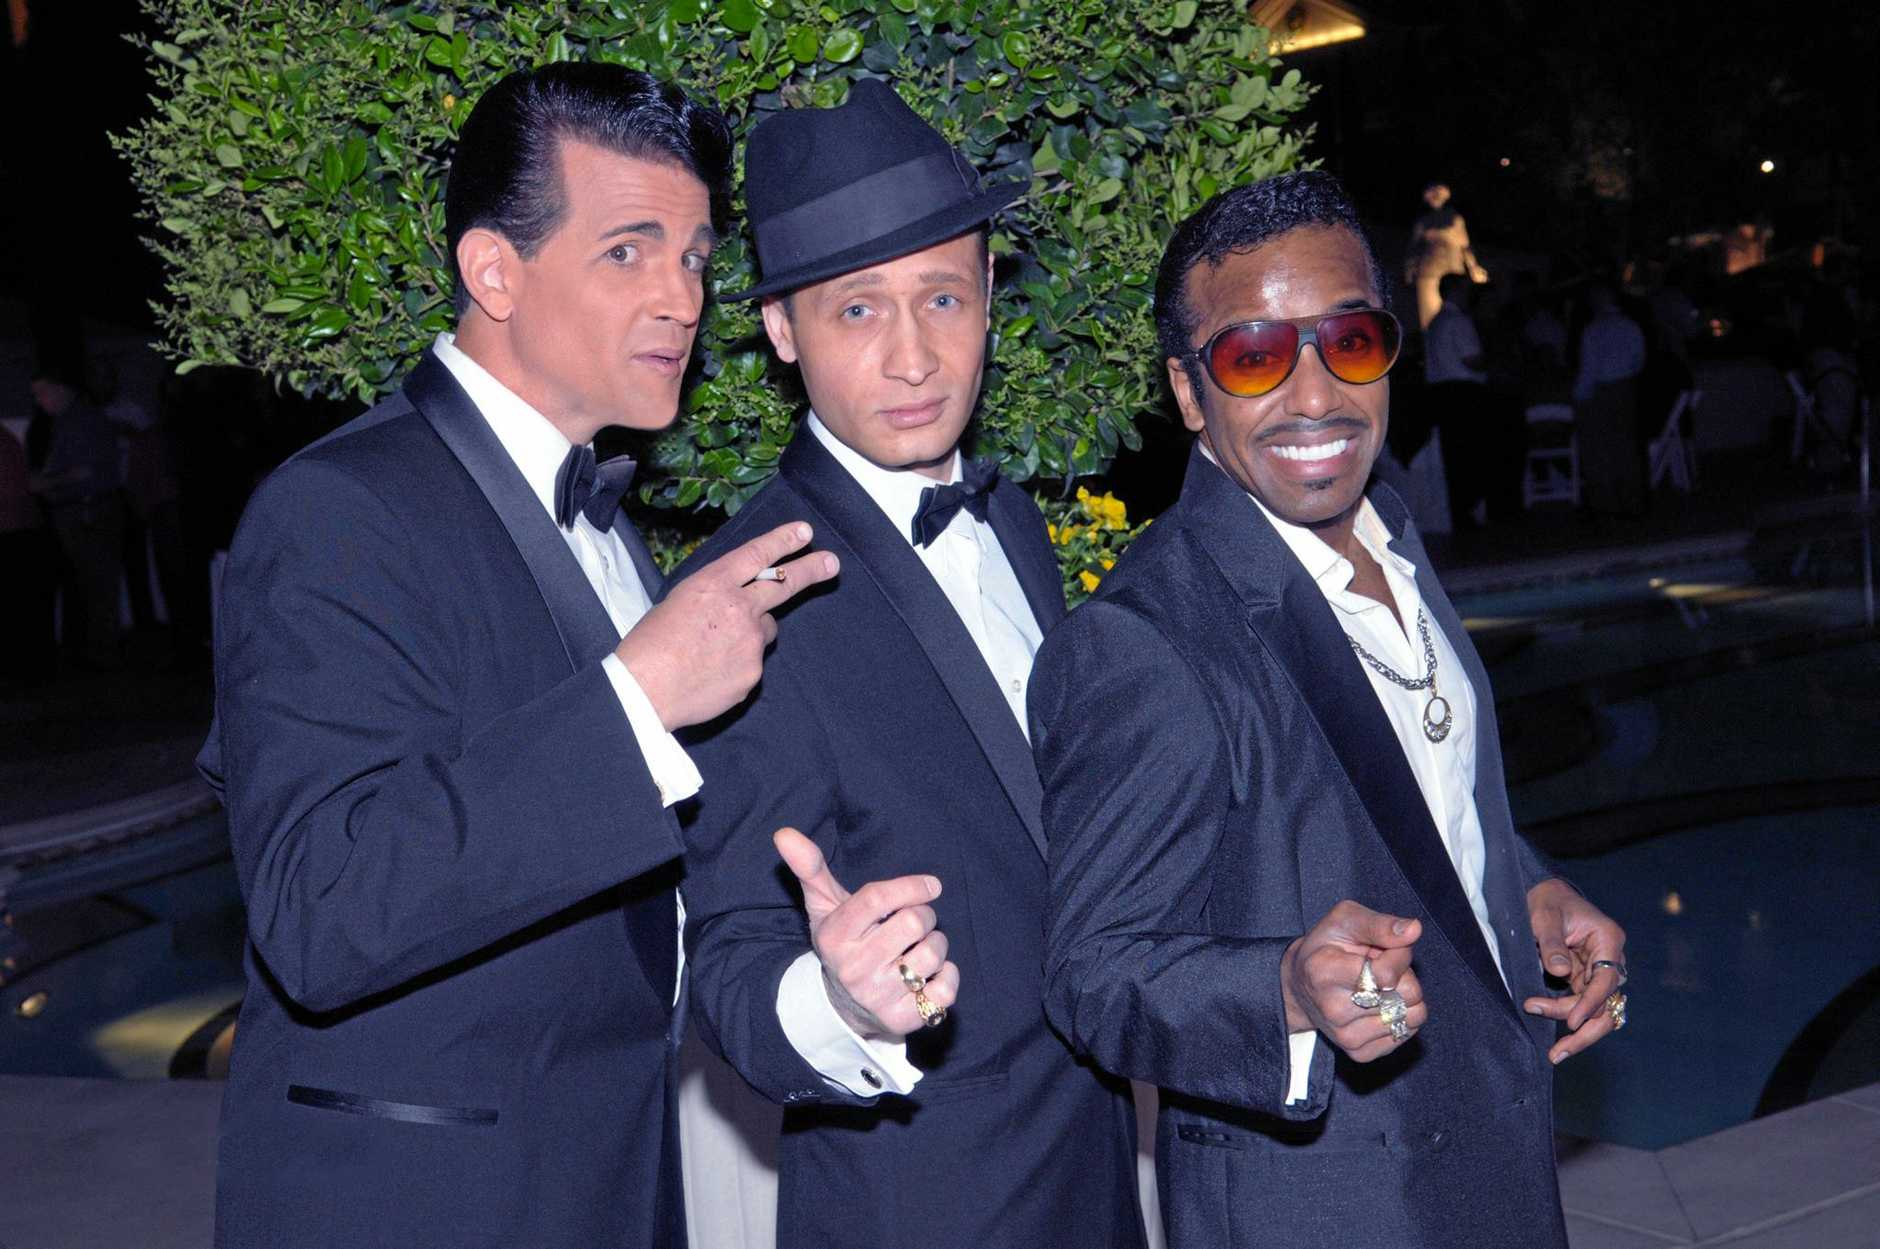 CROONERS FROM THE PAST: The Rat Pack from Vegas.